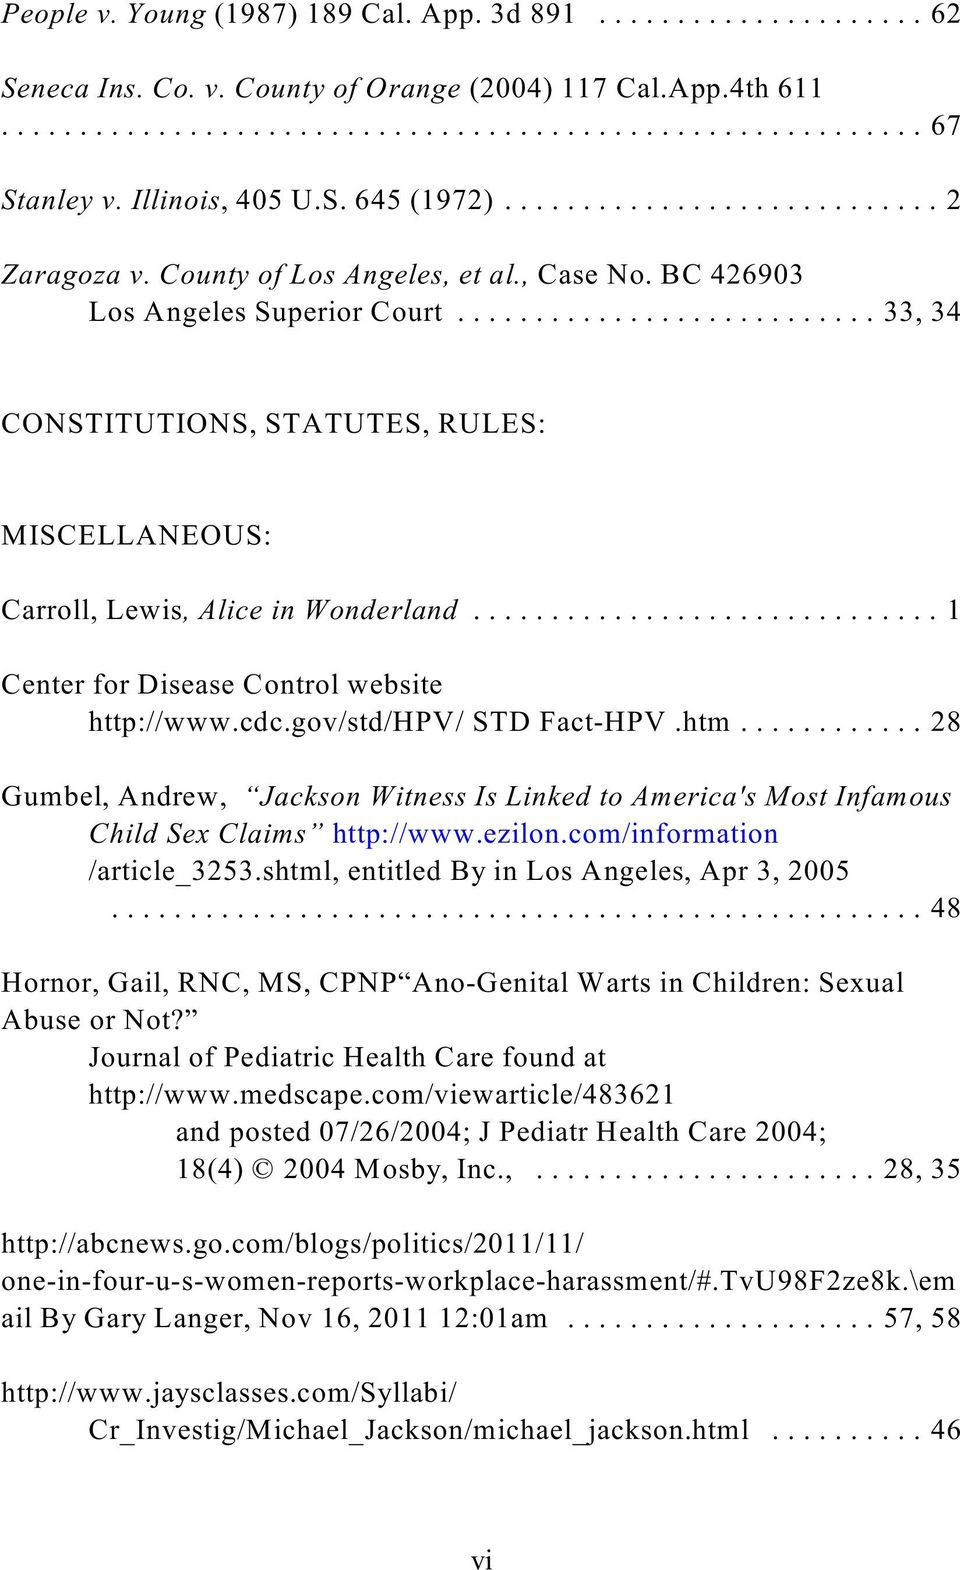 ..1 Center for Disease Control website http://www.cdc.gov/std/hpv/ STD Fact-HPV.htm............ 28 Gumbel, Andrew, Jackson Witness Is Linked to America's Most Infamous Child Sex Claims http://www.